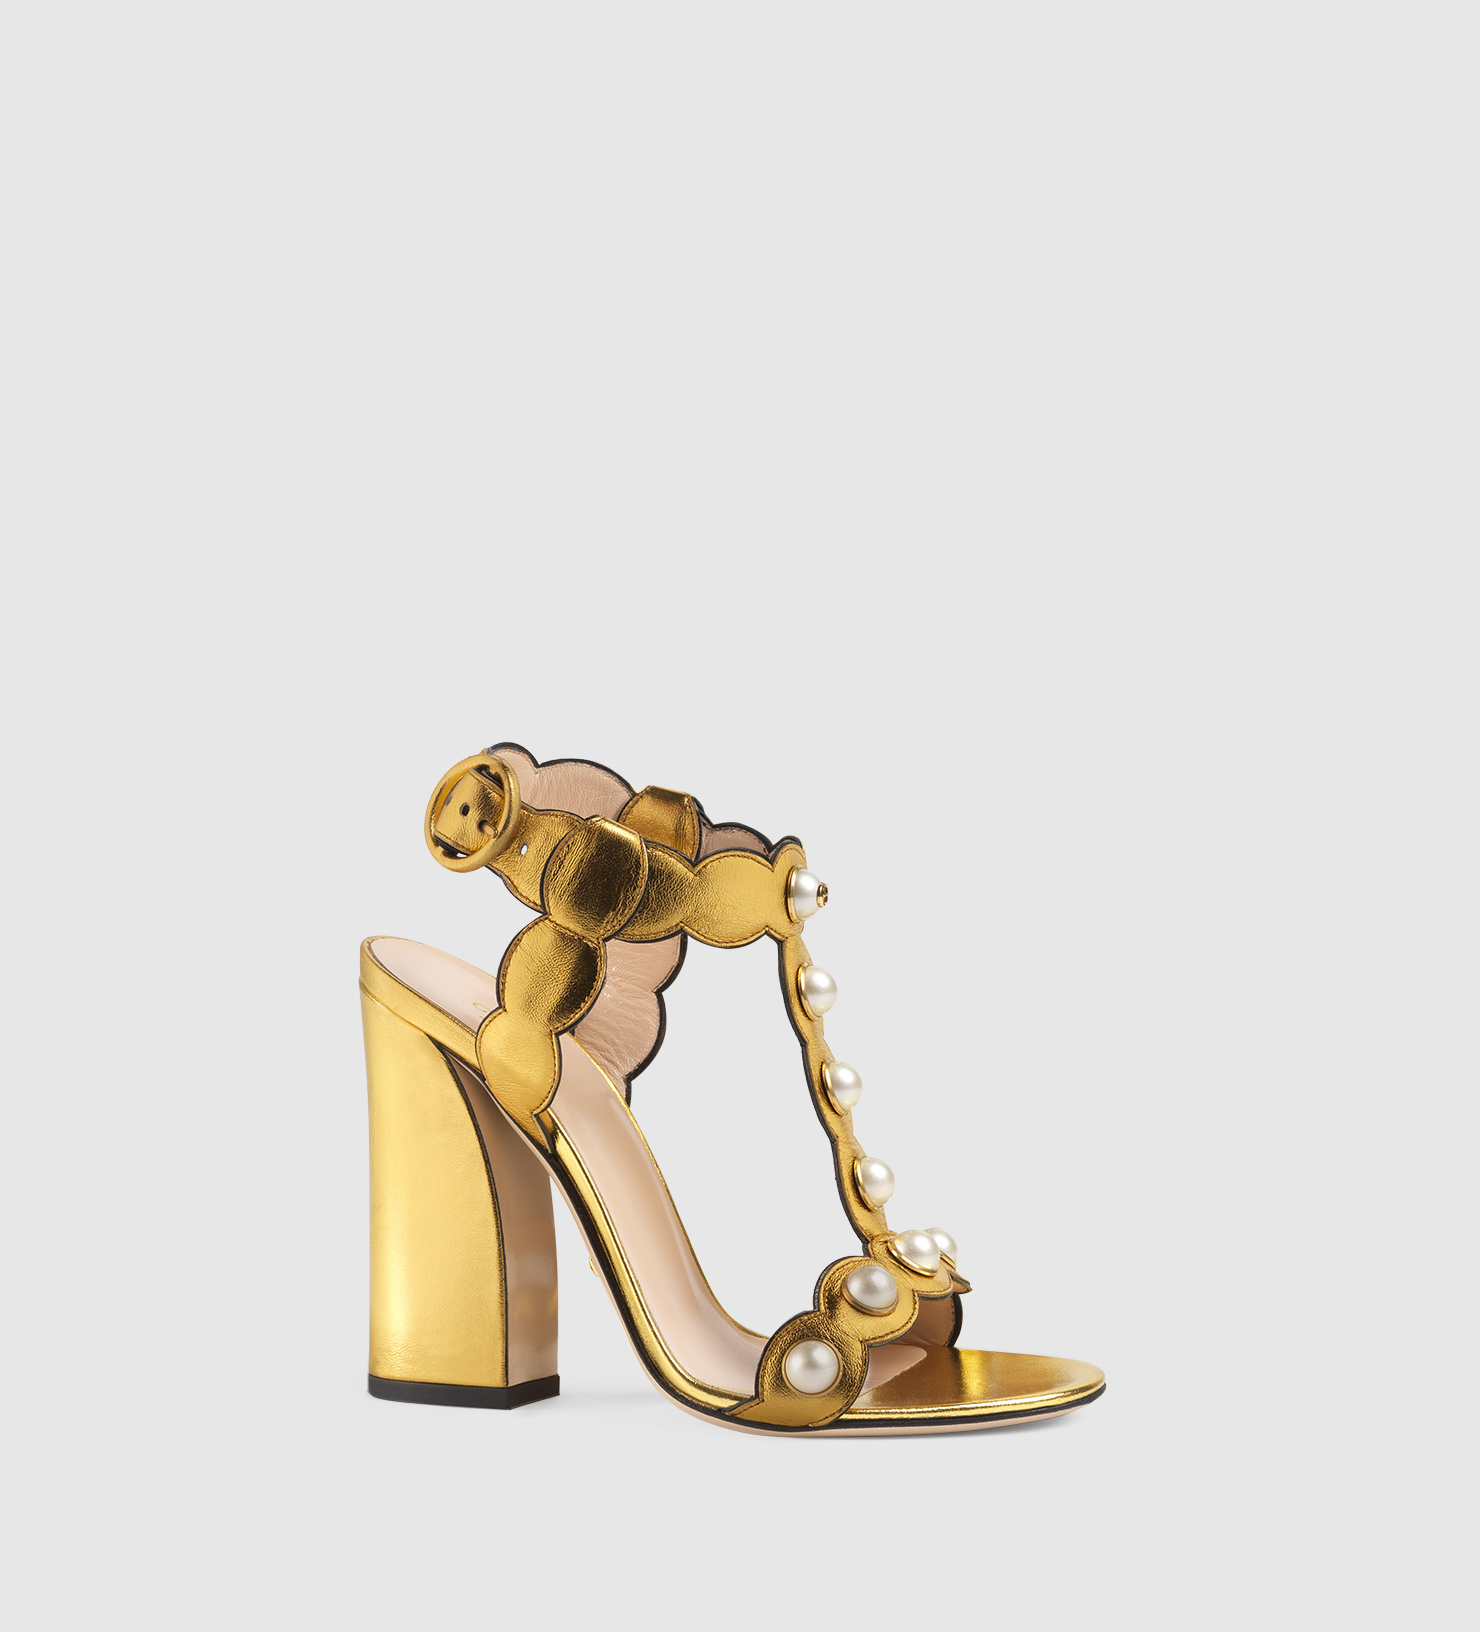 64594c584127f8 Gucci Willow Leather T-strap Sandal in Metallic - Lyst